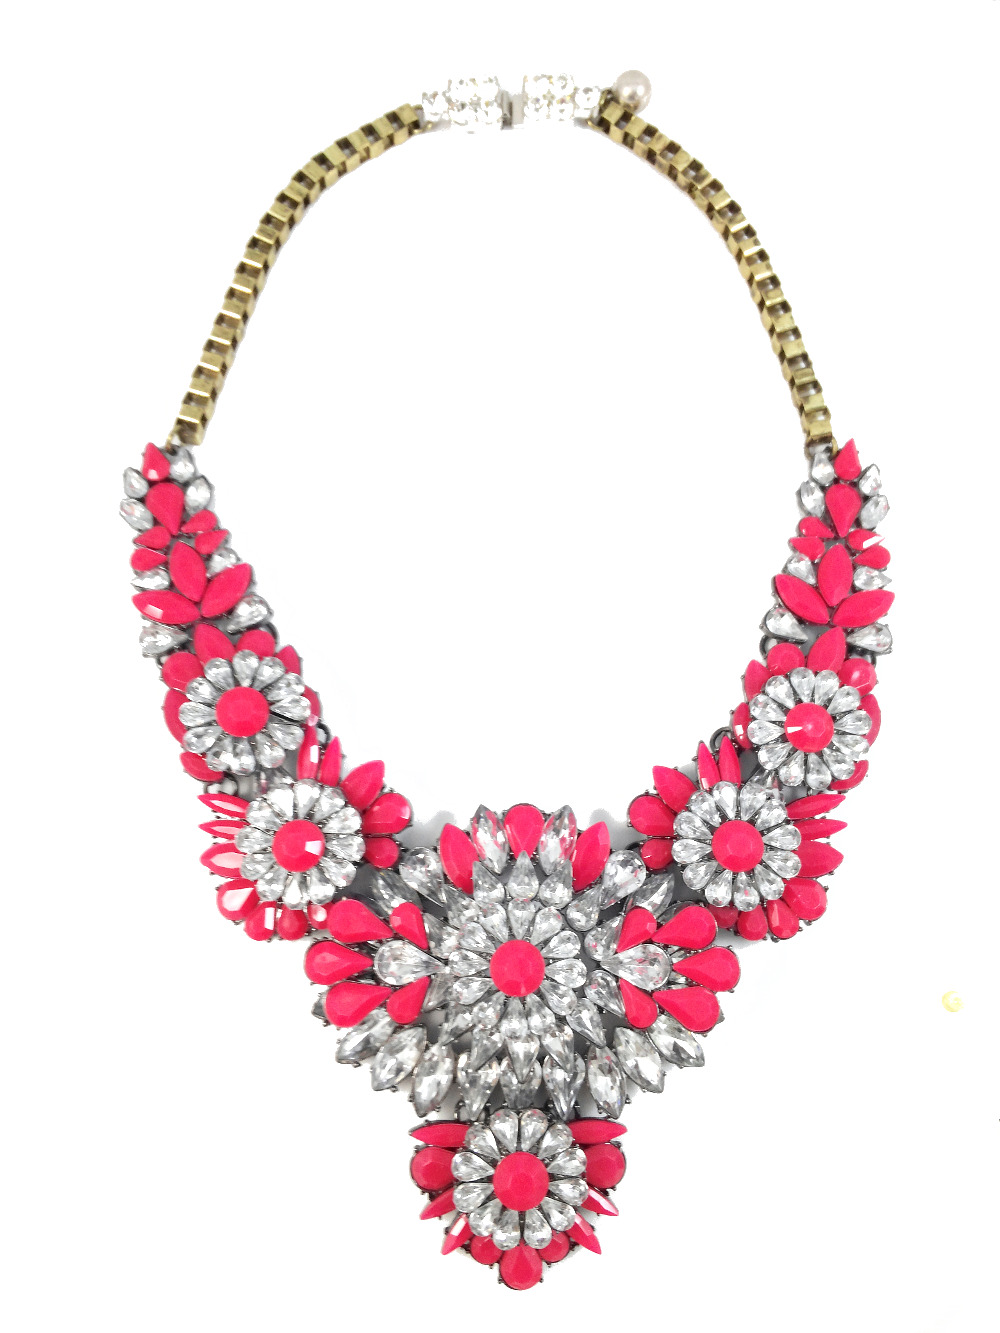 maroon flower alcantara p necklace image shourouk larger